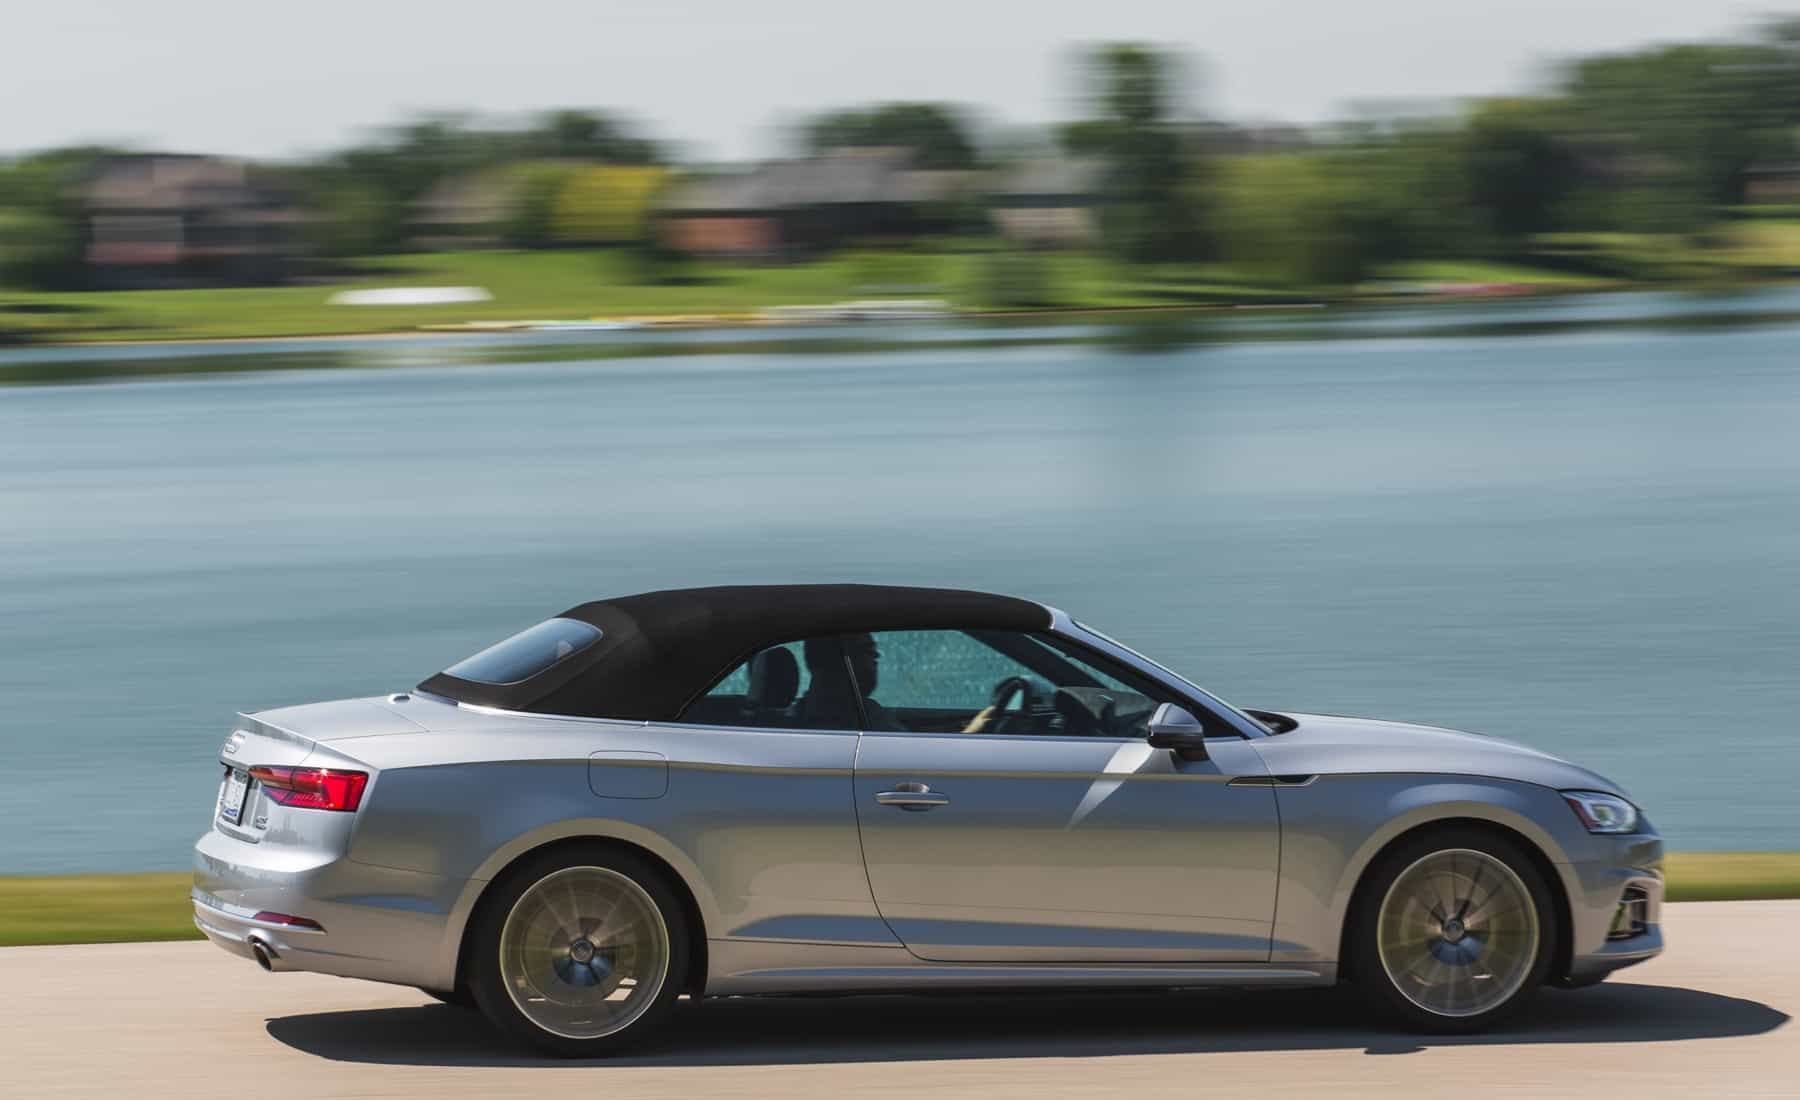 2018 Audi A5 Cabriolet Test Drive (Photo 7 of 45)